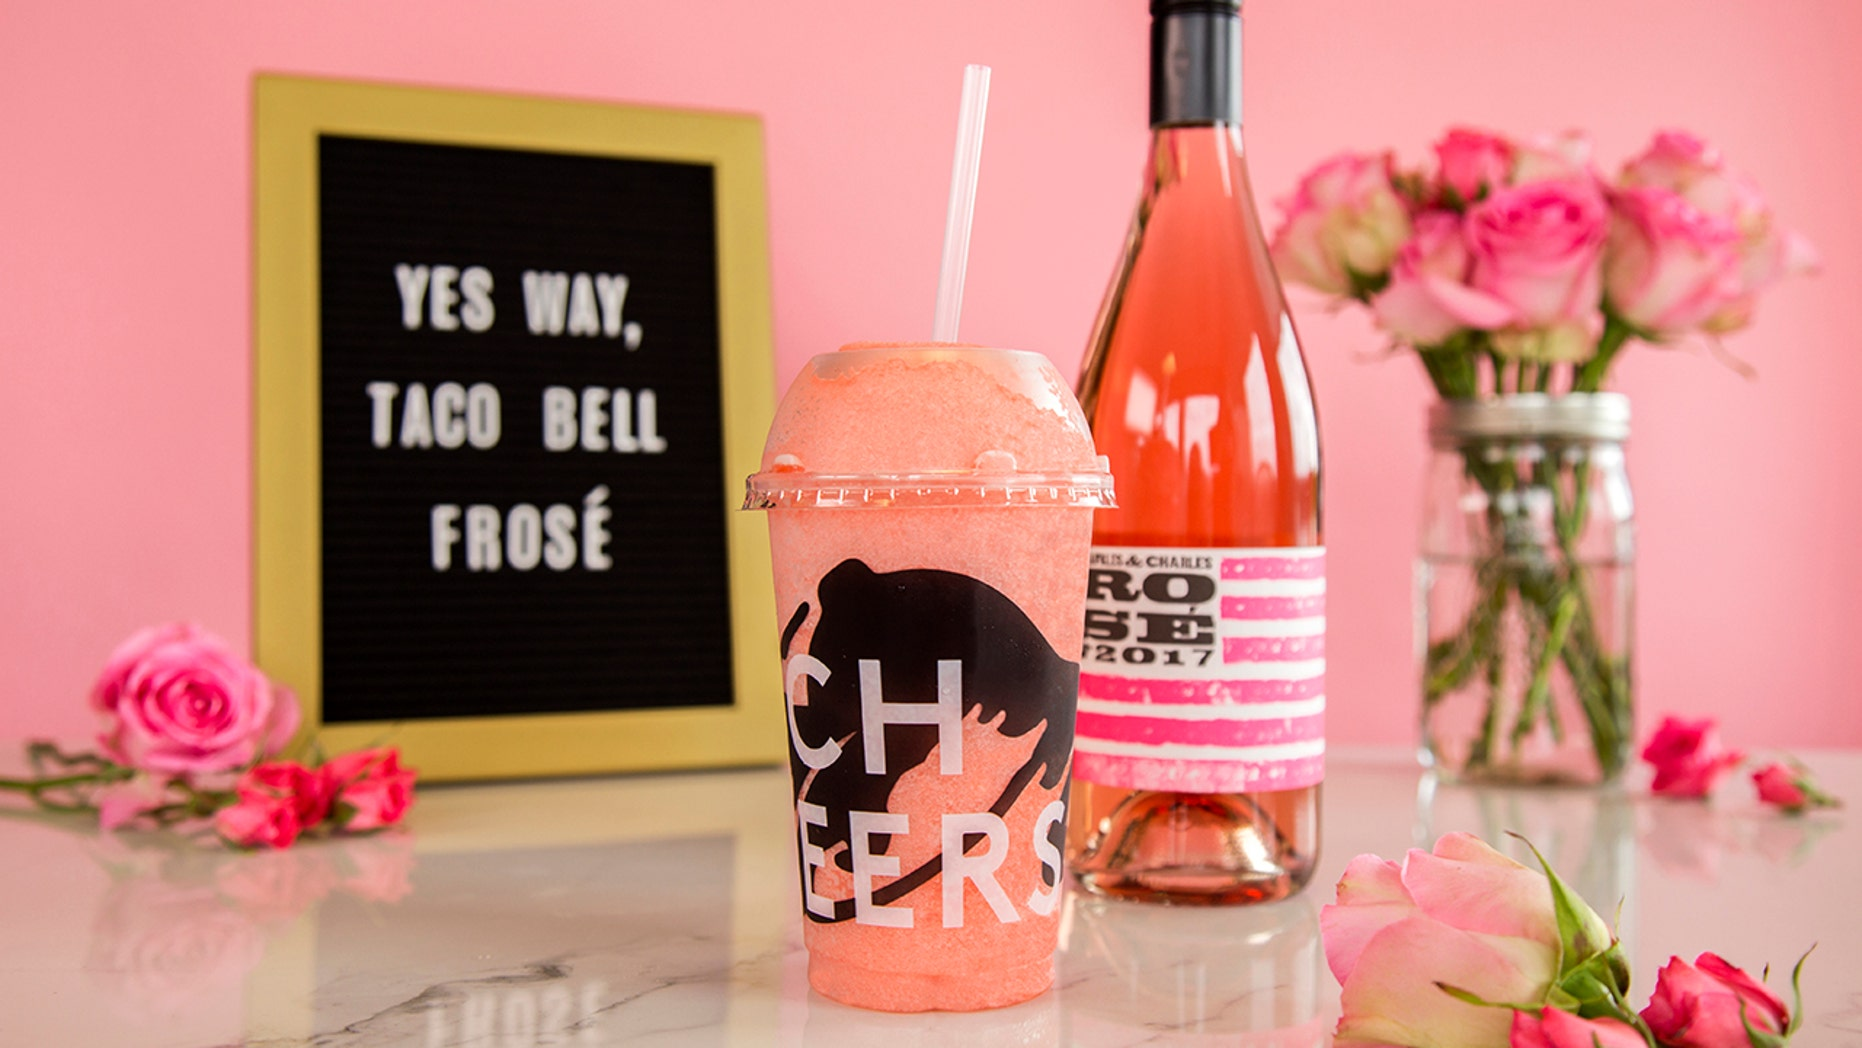 Taco Bell introduced its latest menu item, the Berry Frosé Twisted Freeze.